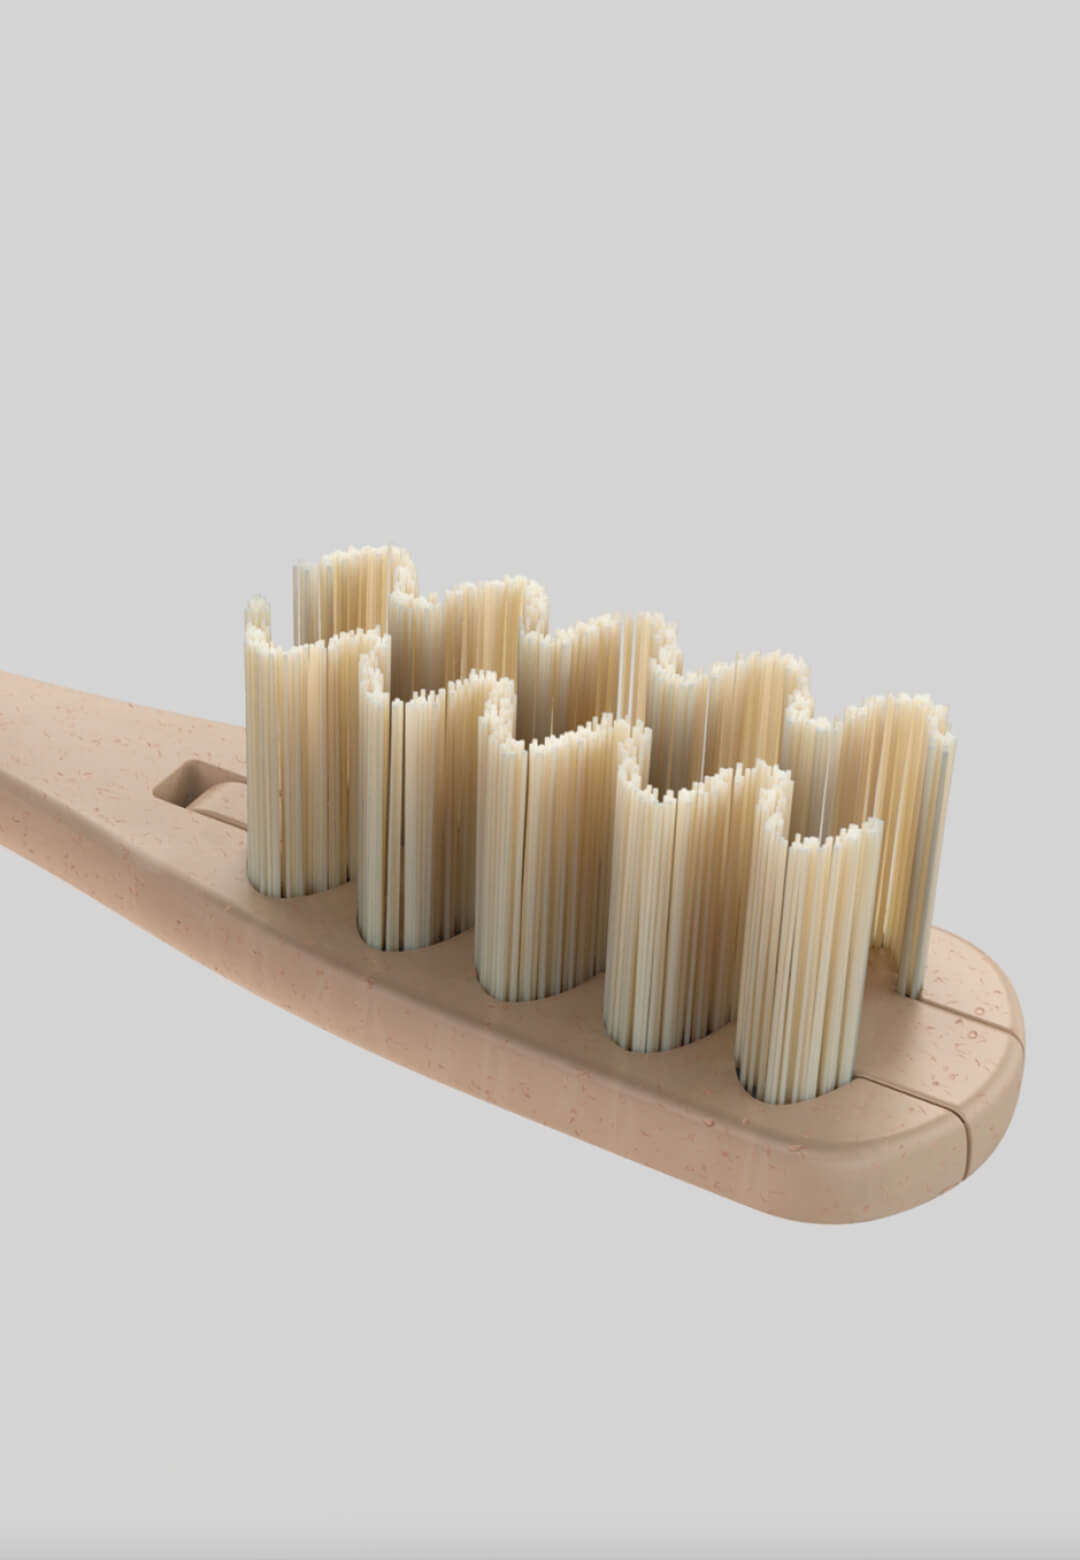 Everloop toothbrush designed by Mexico-based NOS | Everloop Toothbrush | NOS | STIRworld